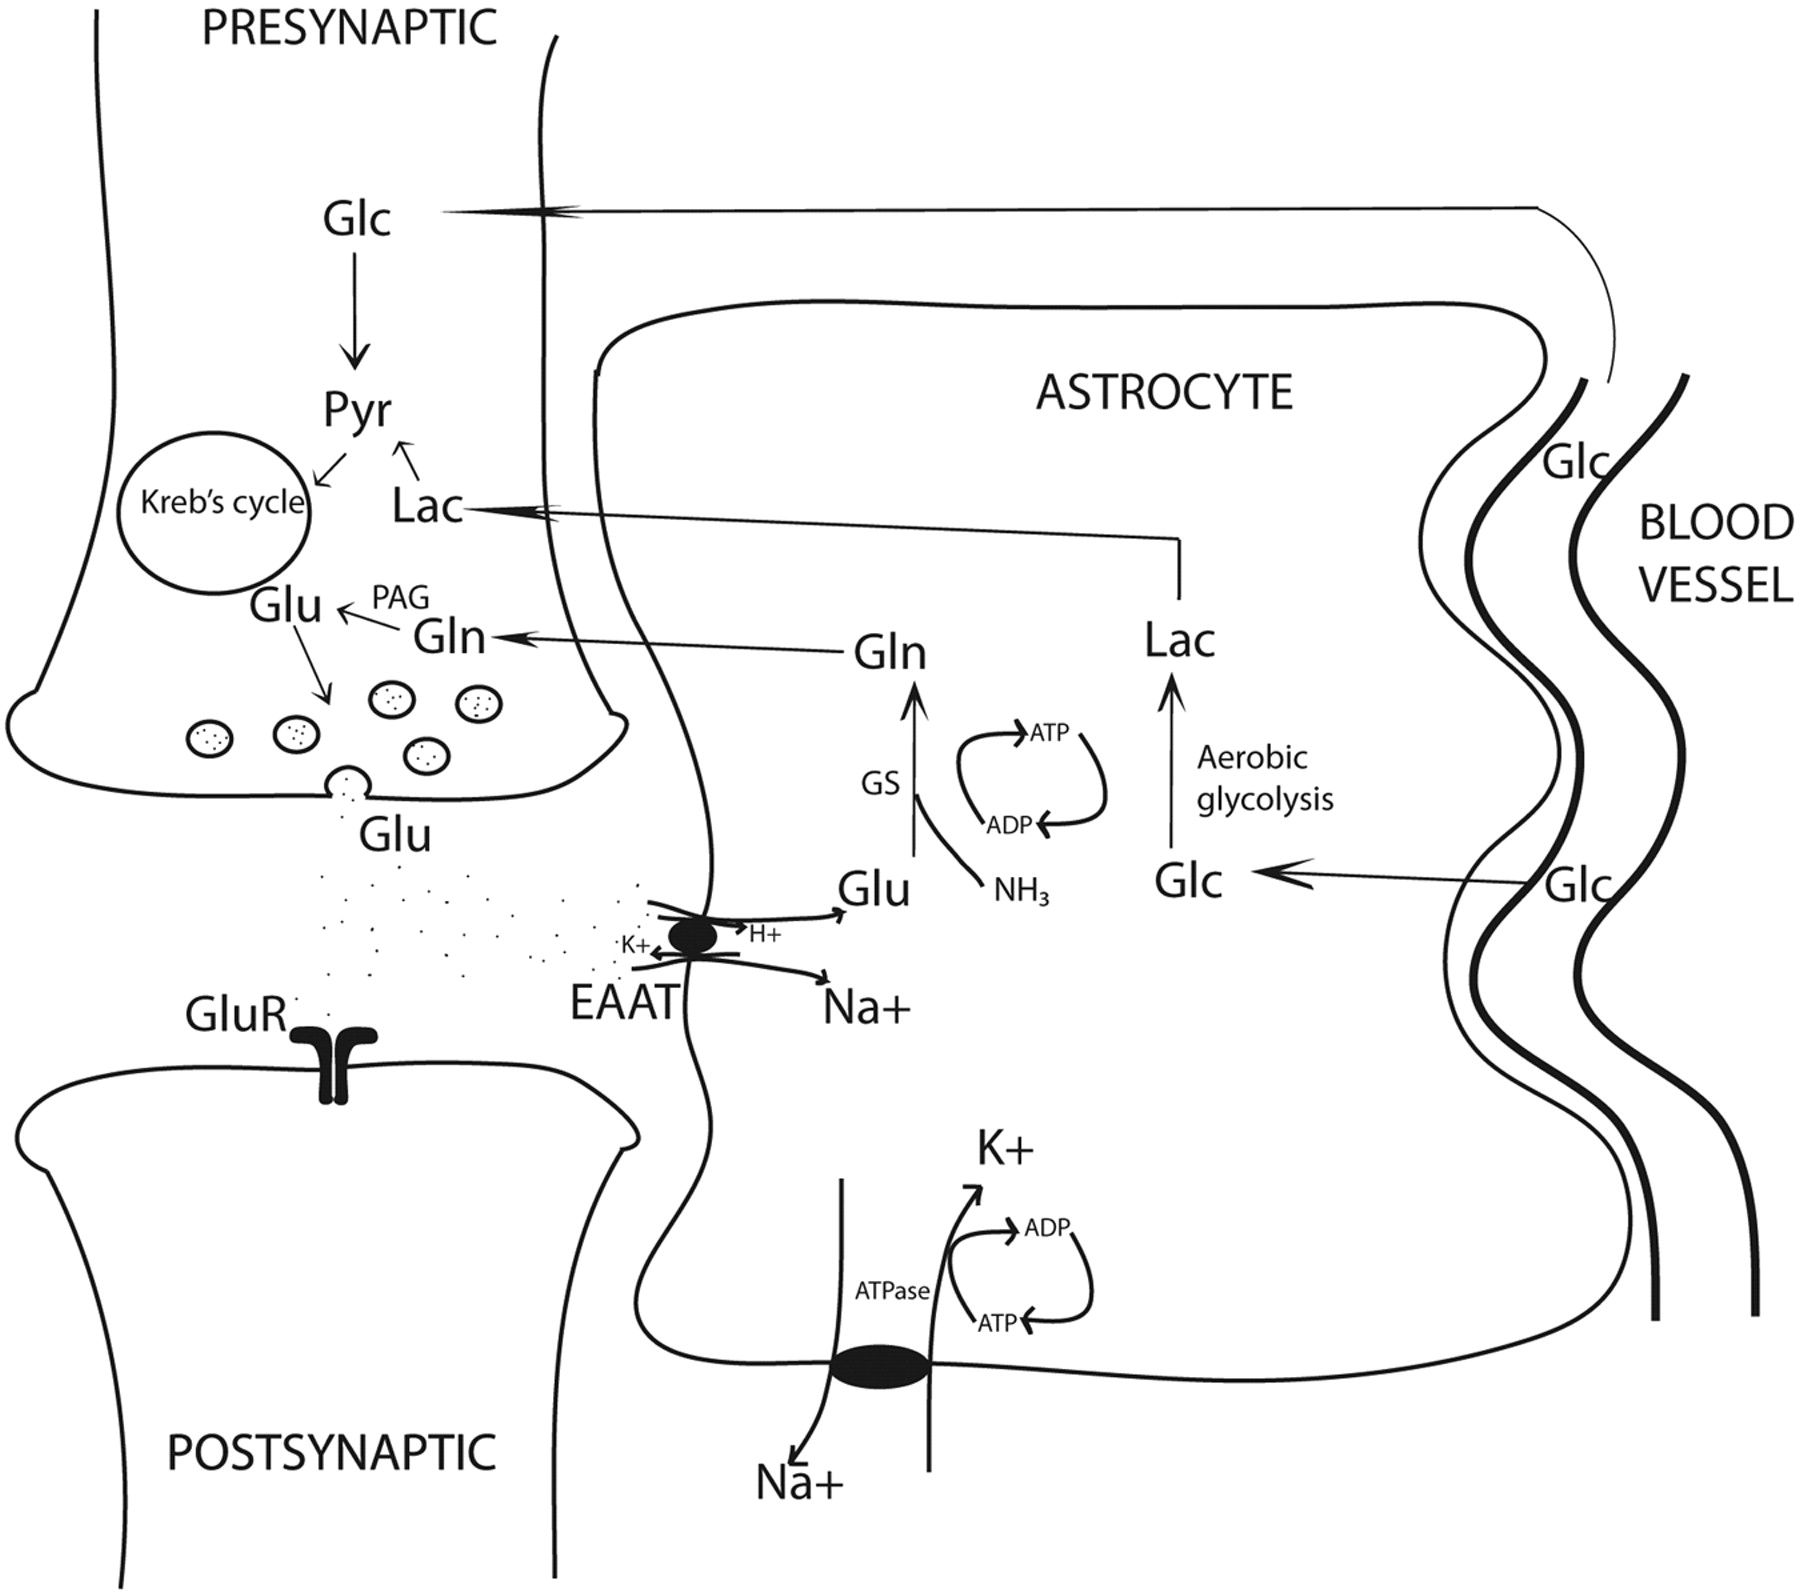 Proton mr spectroscopydetectable major neurotransmitters of the download figure ccuart Gallery